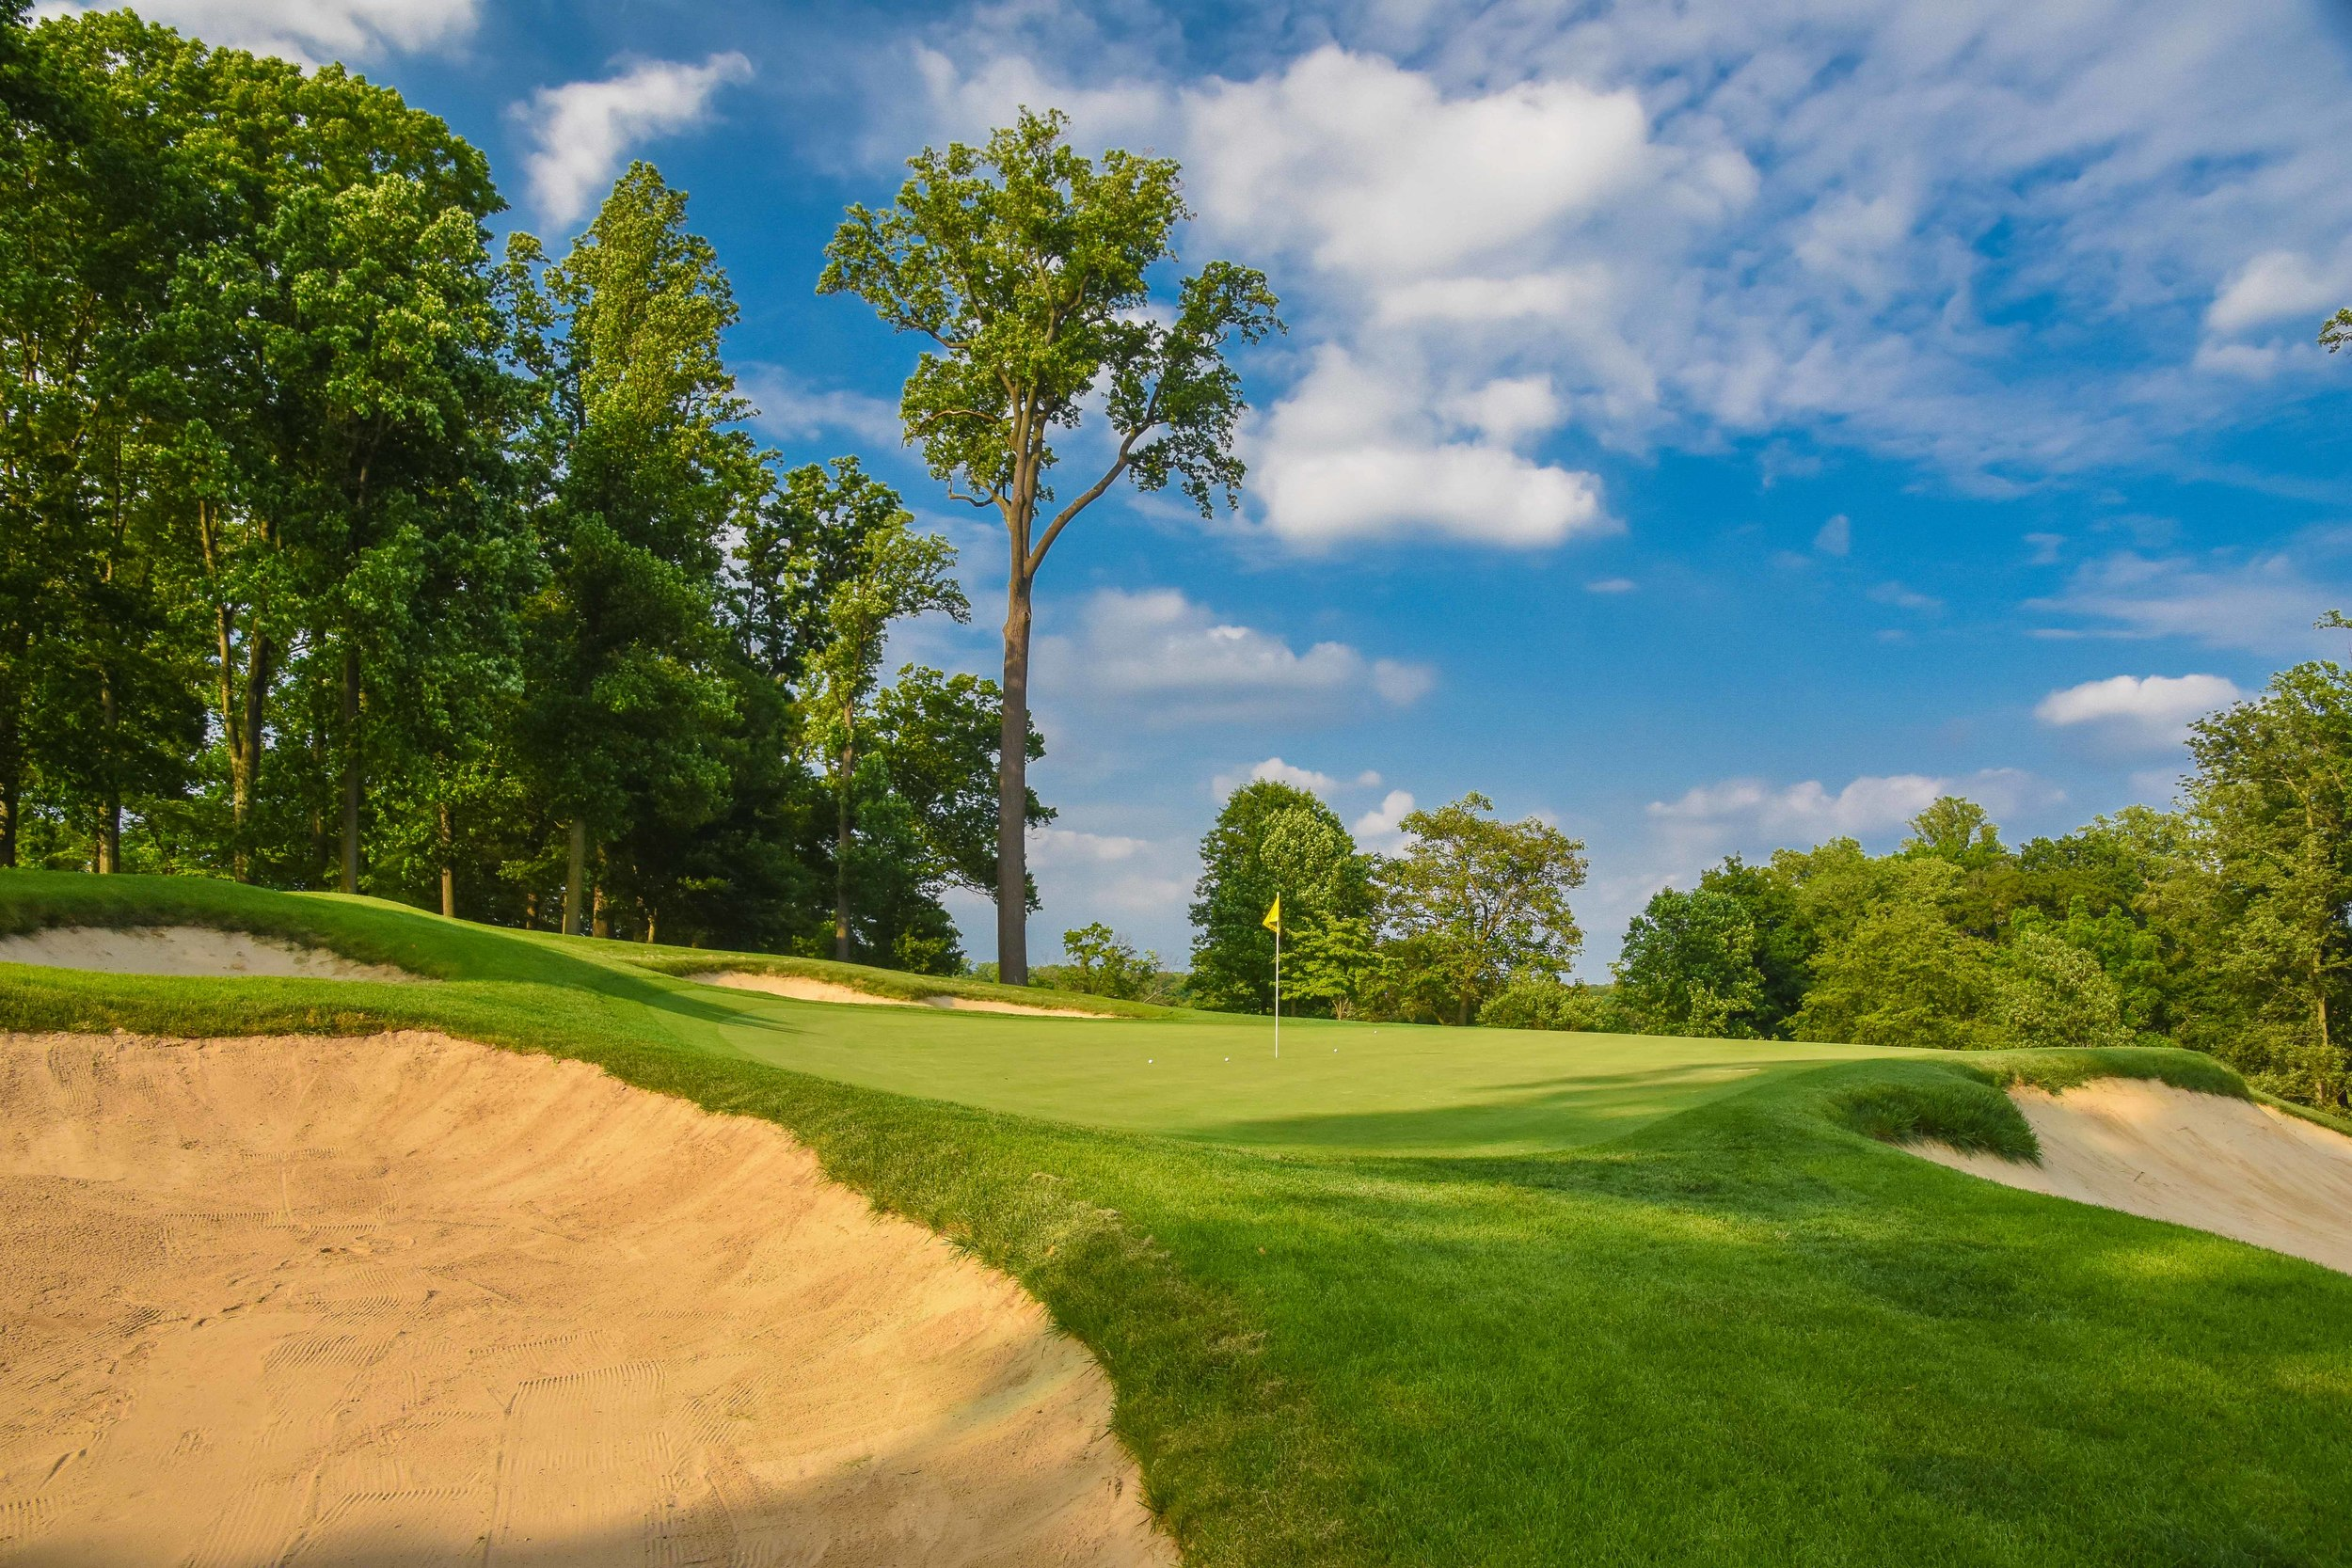 Our round at Rolling Green would go into extra holes as we upgraded from 18 to 27.